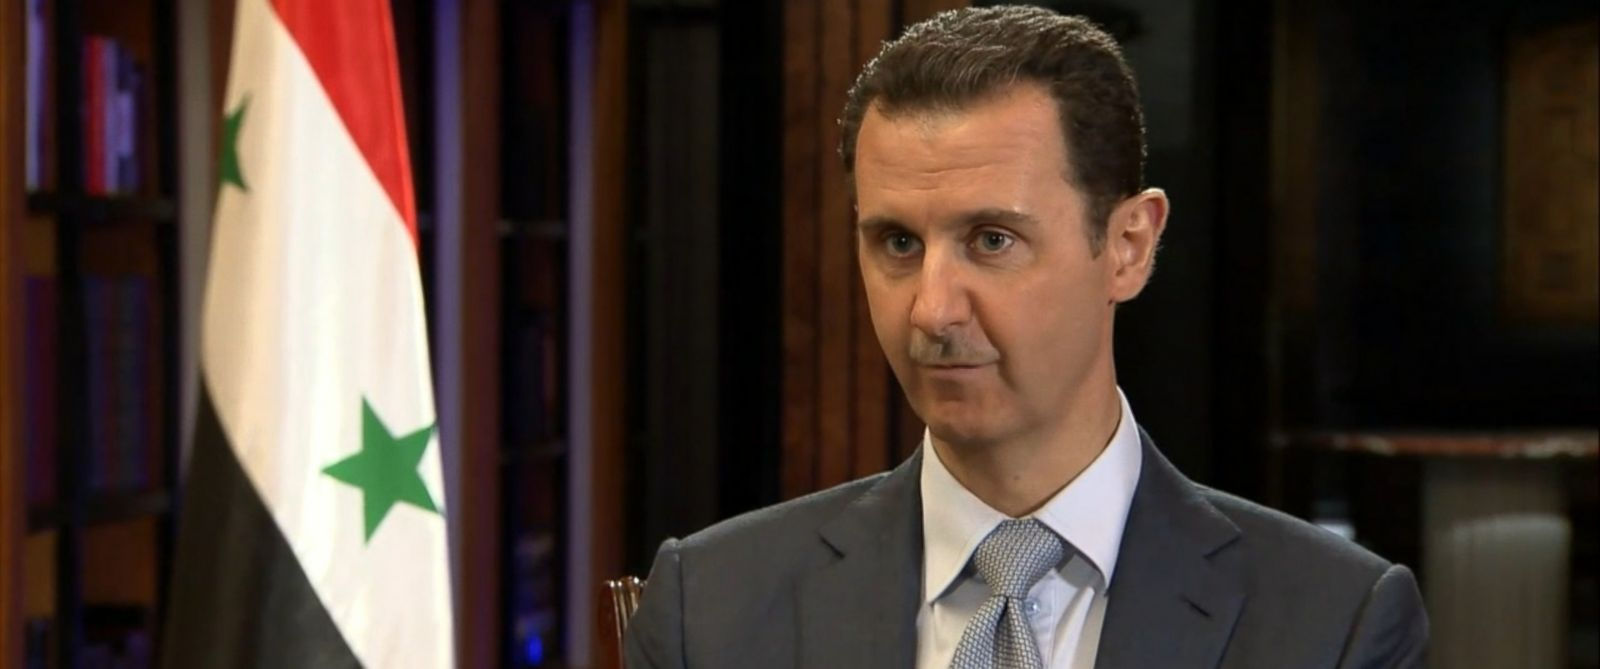 PHOTO: Syrian President Bashar al-Assad speaks during a rare interview with the BBCs Jeremy Bowen, Feb. 10, 2015.